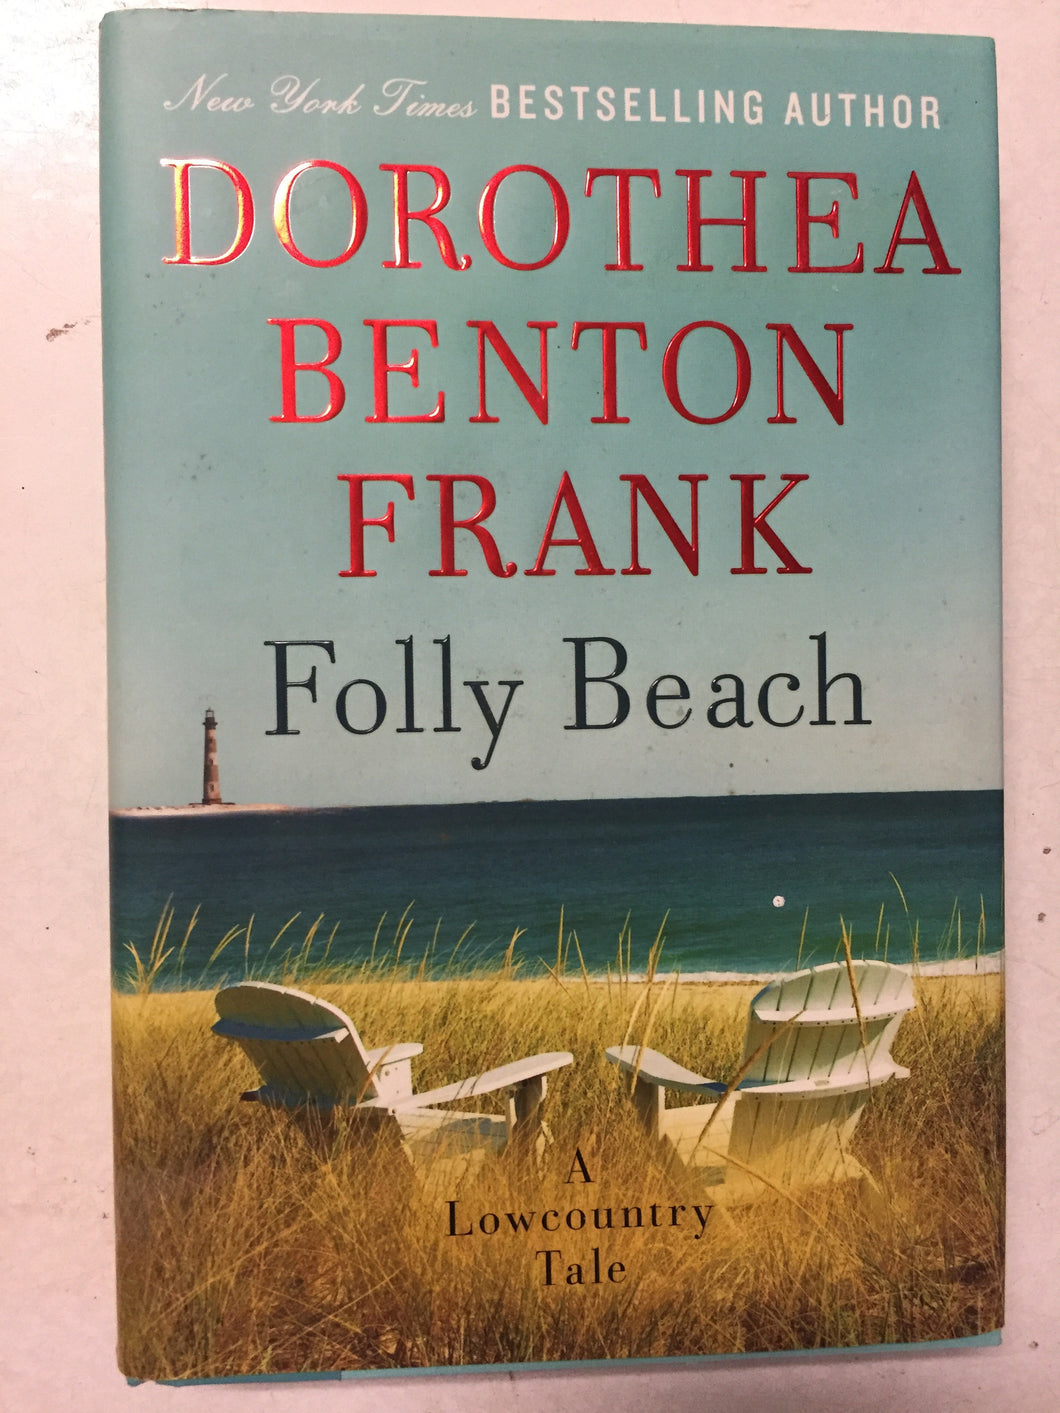 Folly Beach A Lowcountry Tale - Slickcatbooks